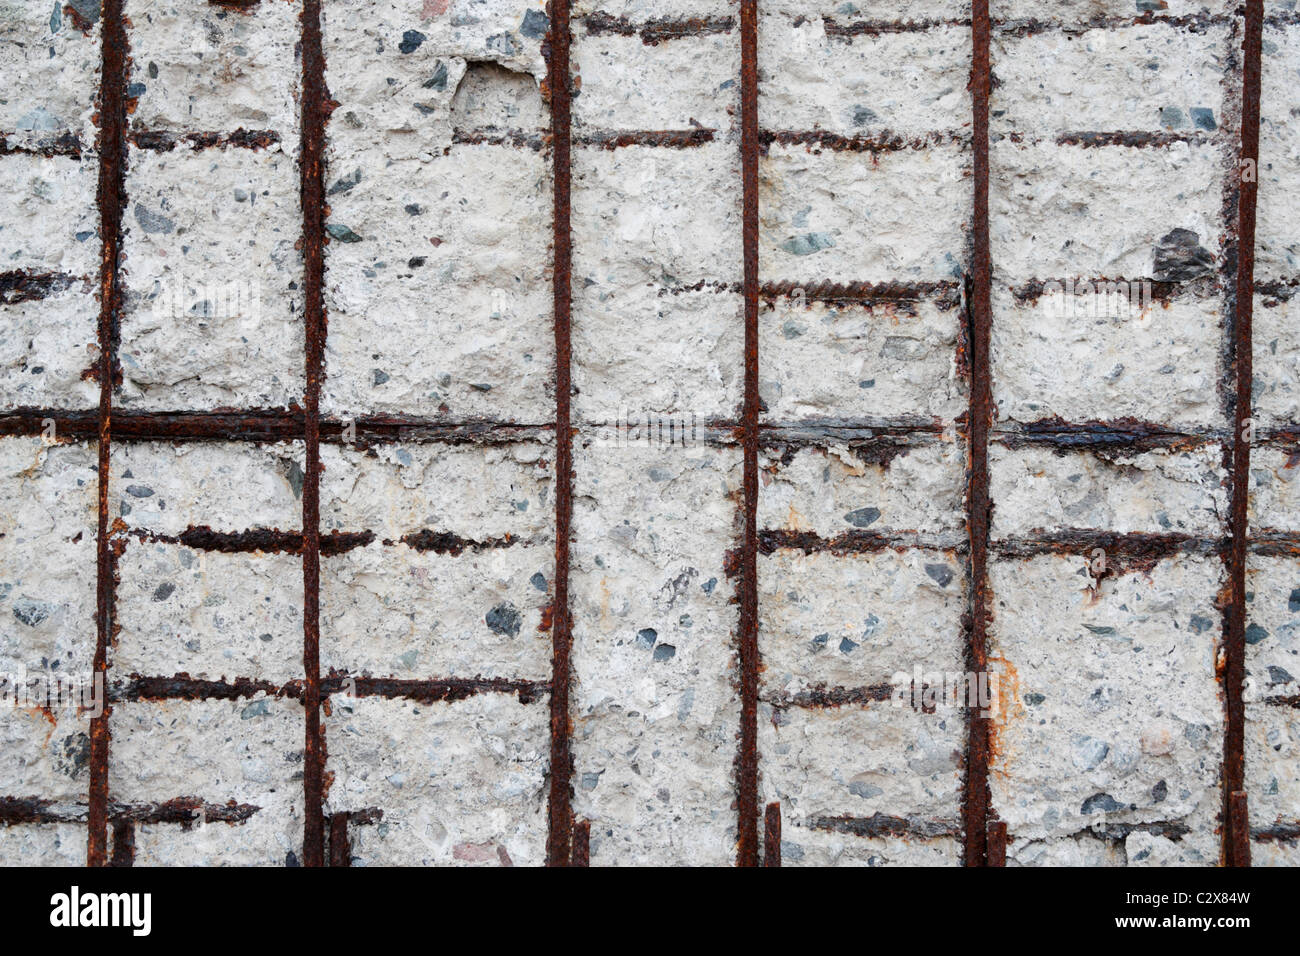 Reinforced concrete sea wall showing salt and weather damage - Stock Image